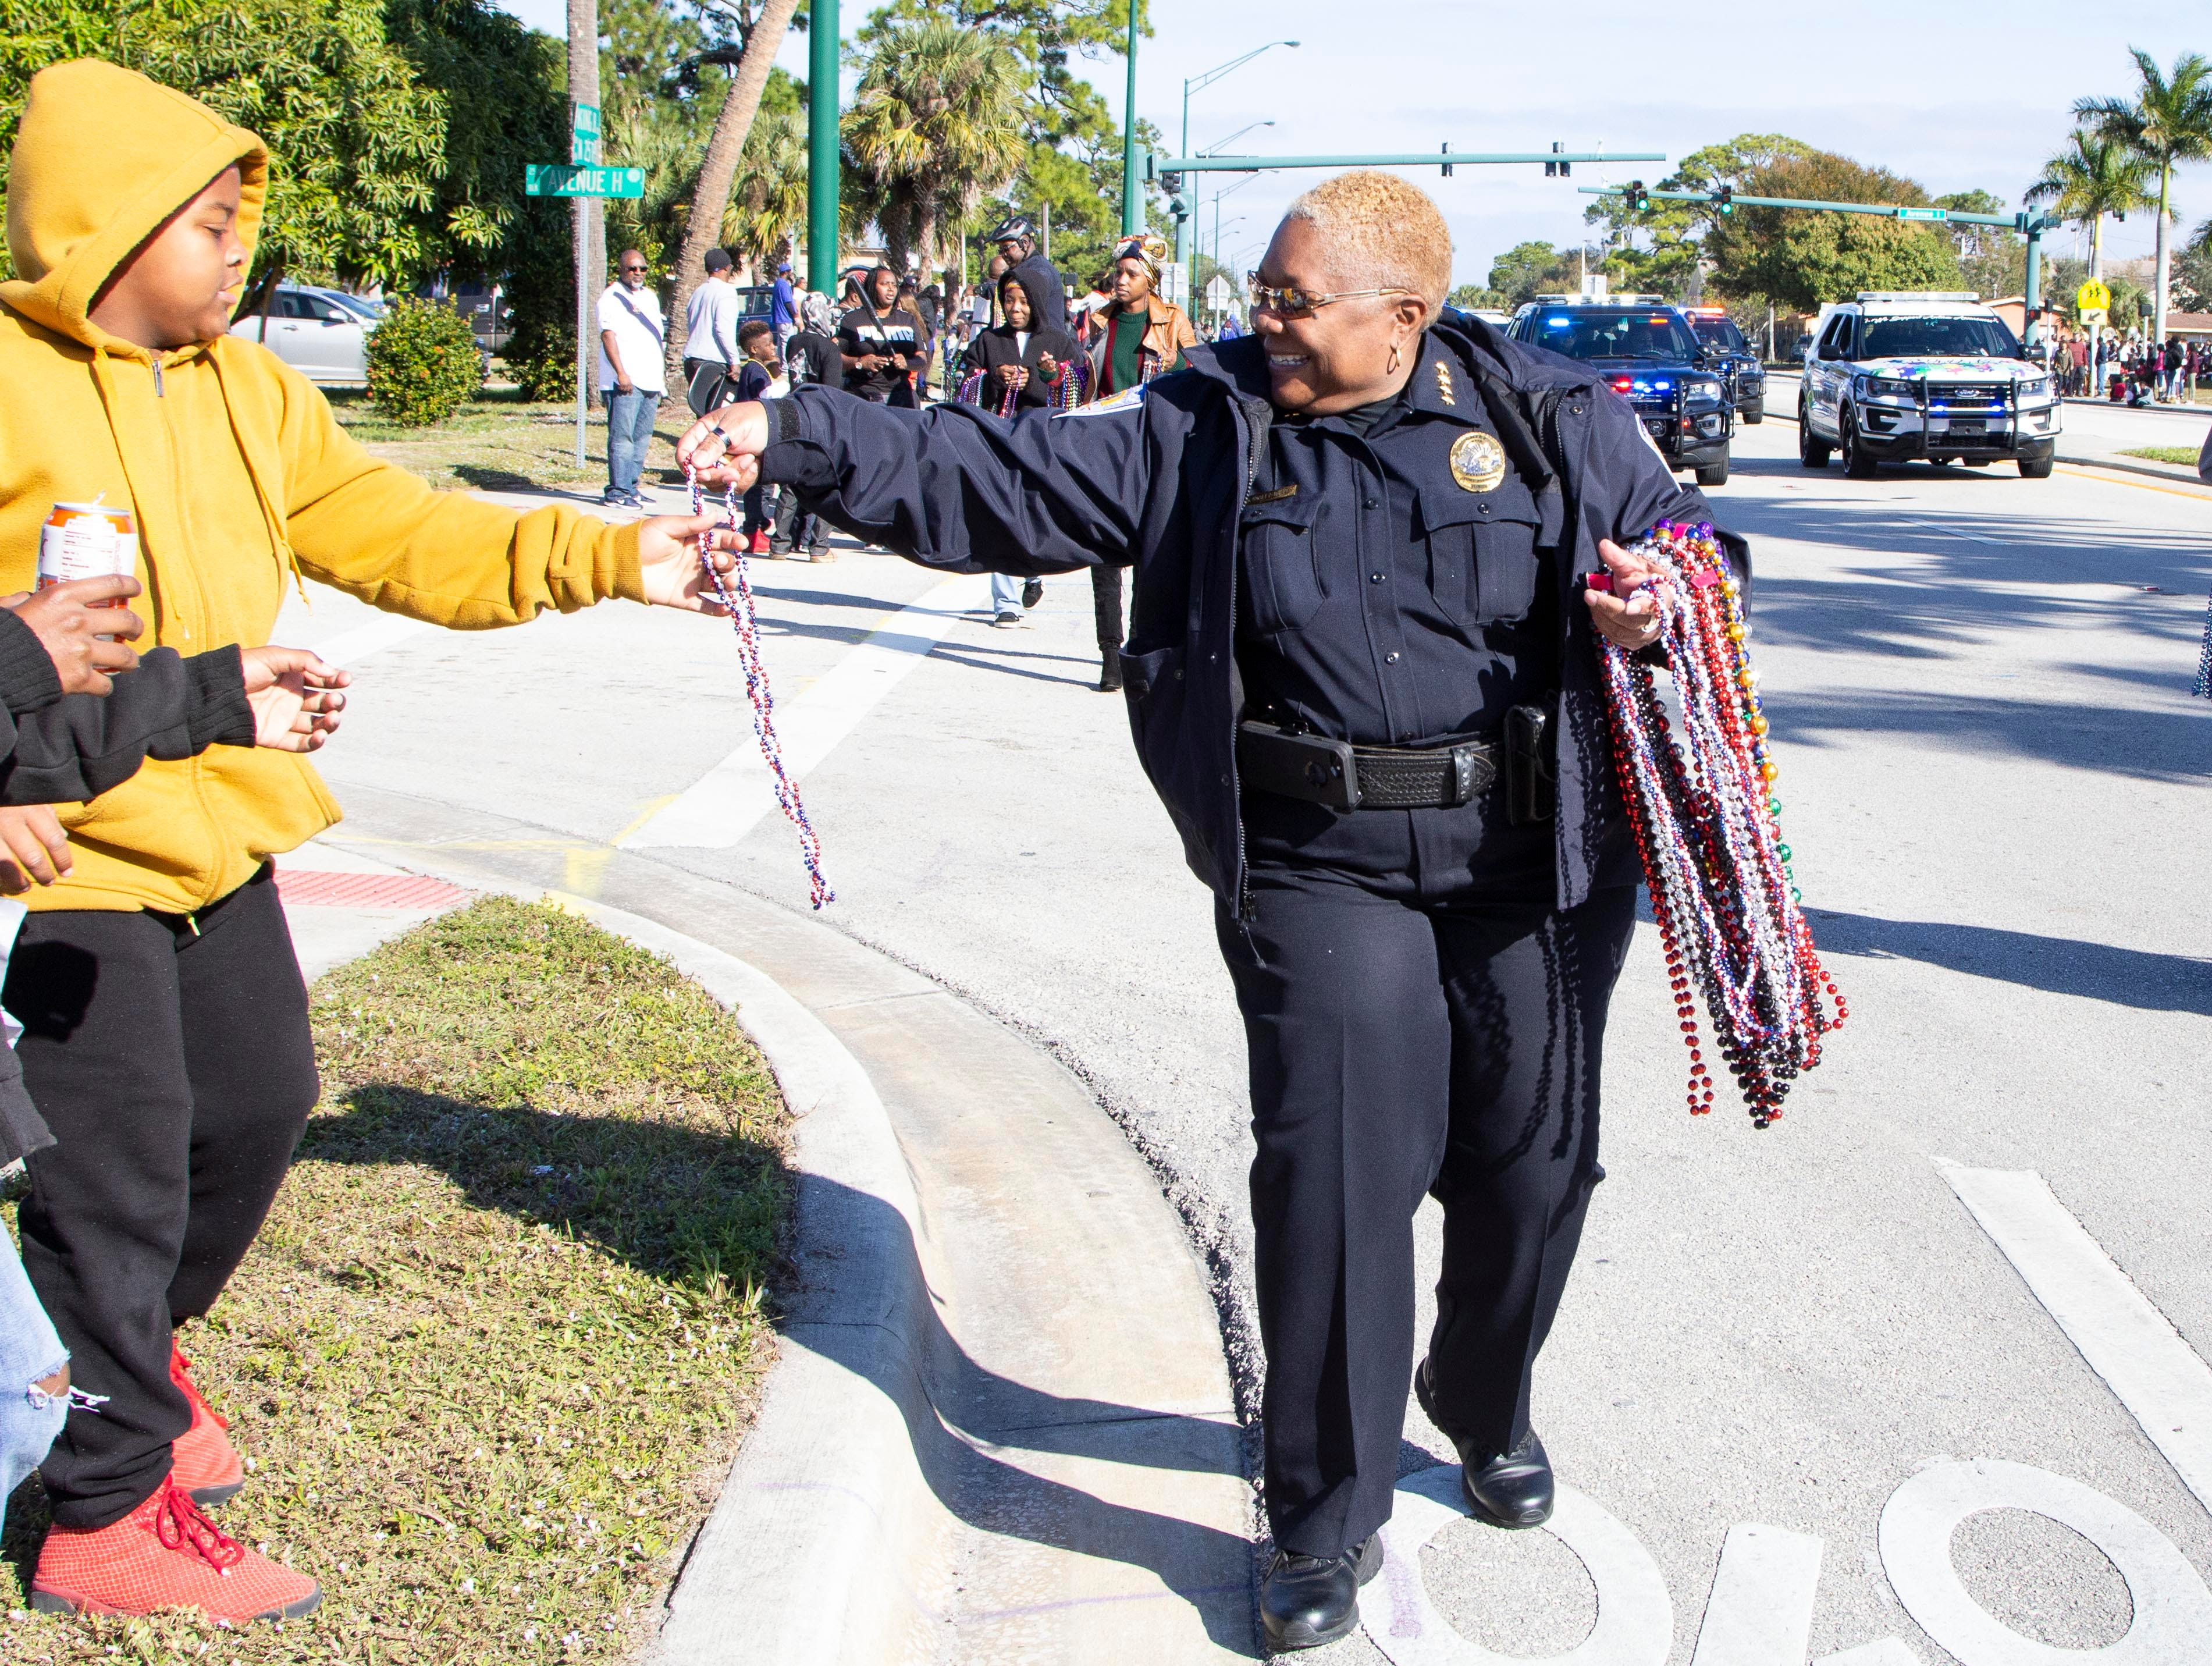 """The annual Dr. Martin Luther King Jr. Grand Parade was held on Monday, Jan. 21, 2019, in Fort Pierce, to honor King's legacy and celebrate his life. The parade began at Avenue I and Dr. Martin Luther King Blvd. and ended at Lawnwood Stadium. The theme of this year's parade was, """"A Legacy of Justice, Peace, and Equality."""""""